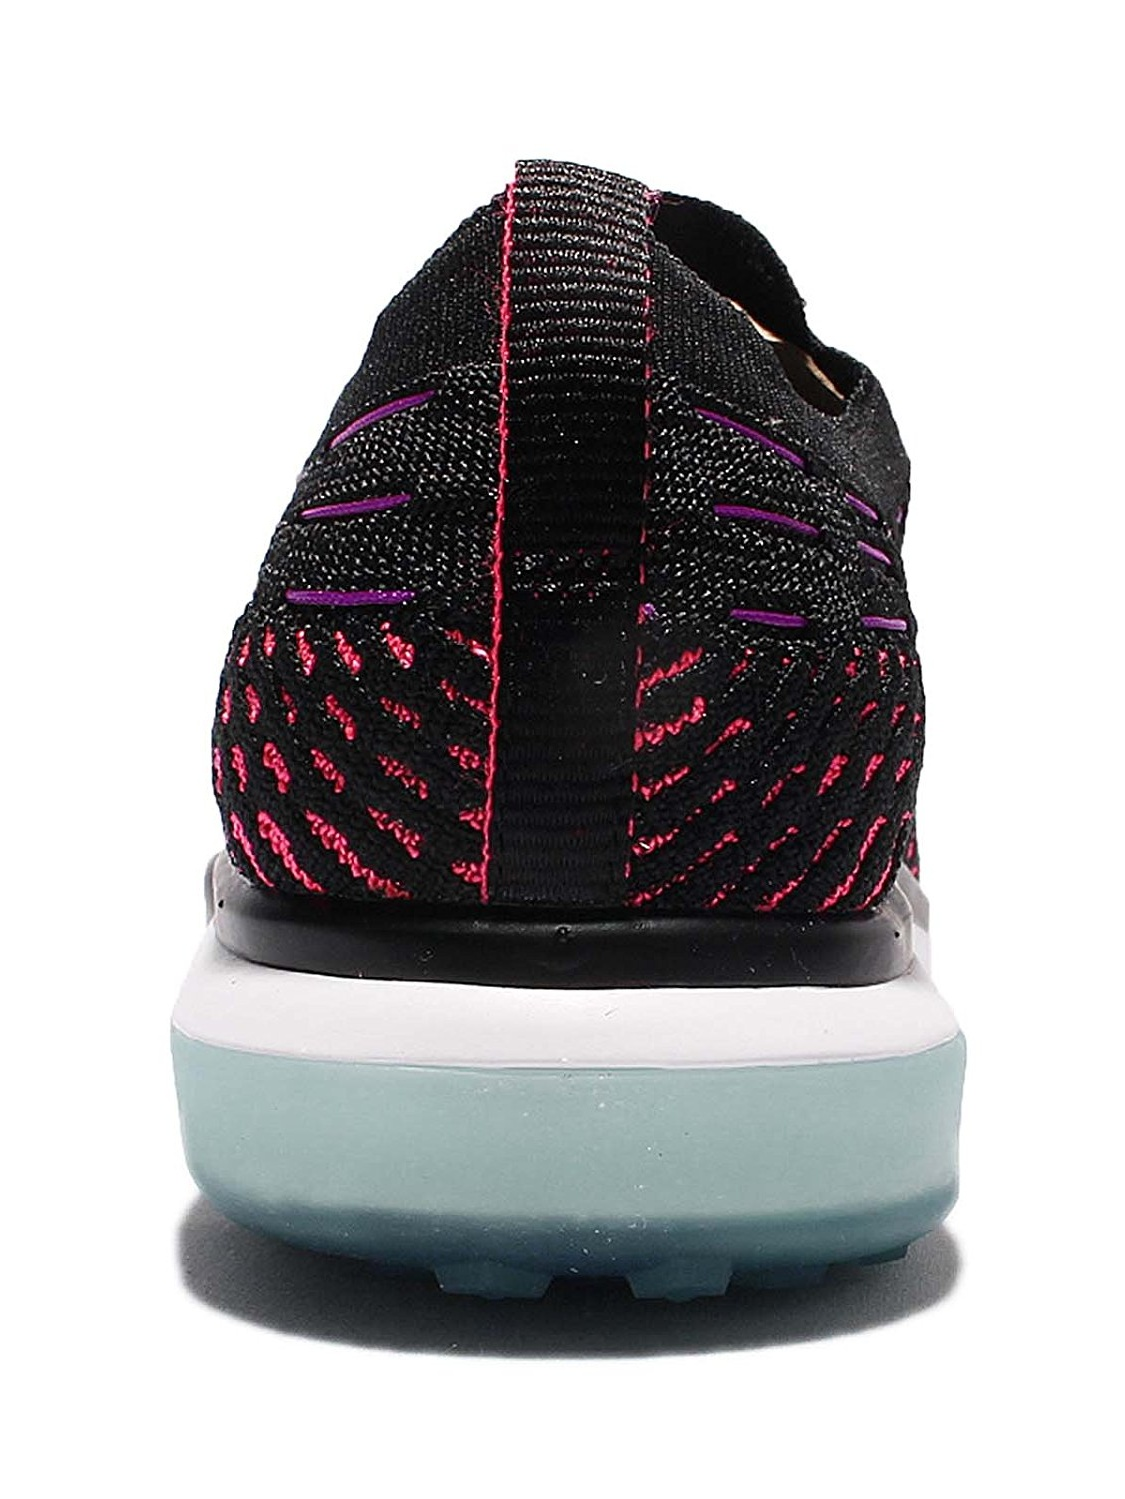 Nike Women's Air Zoom Fearless Flyknit Running Shoes